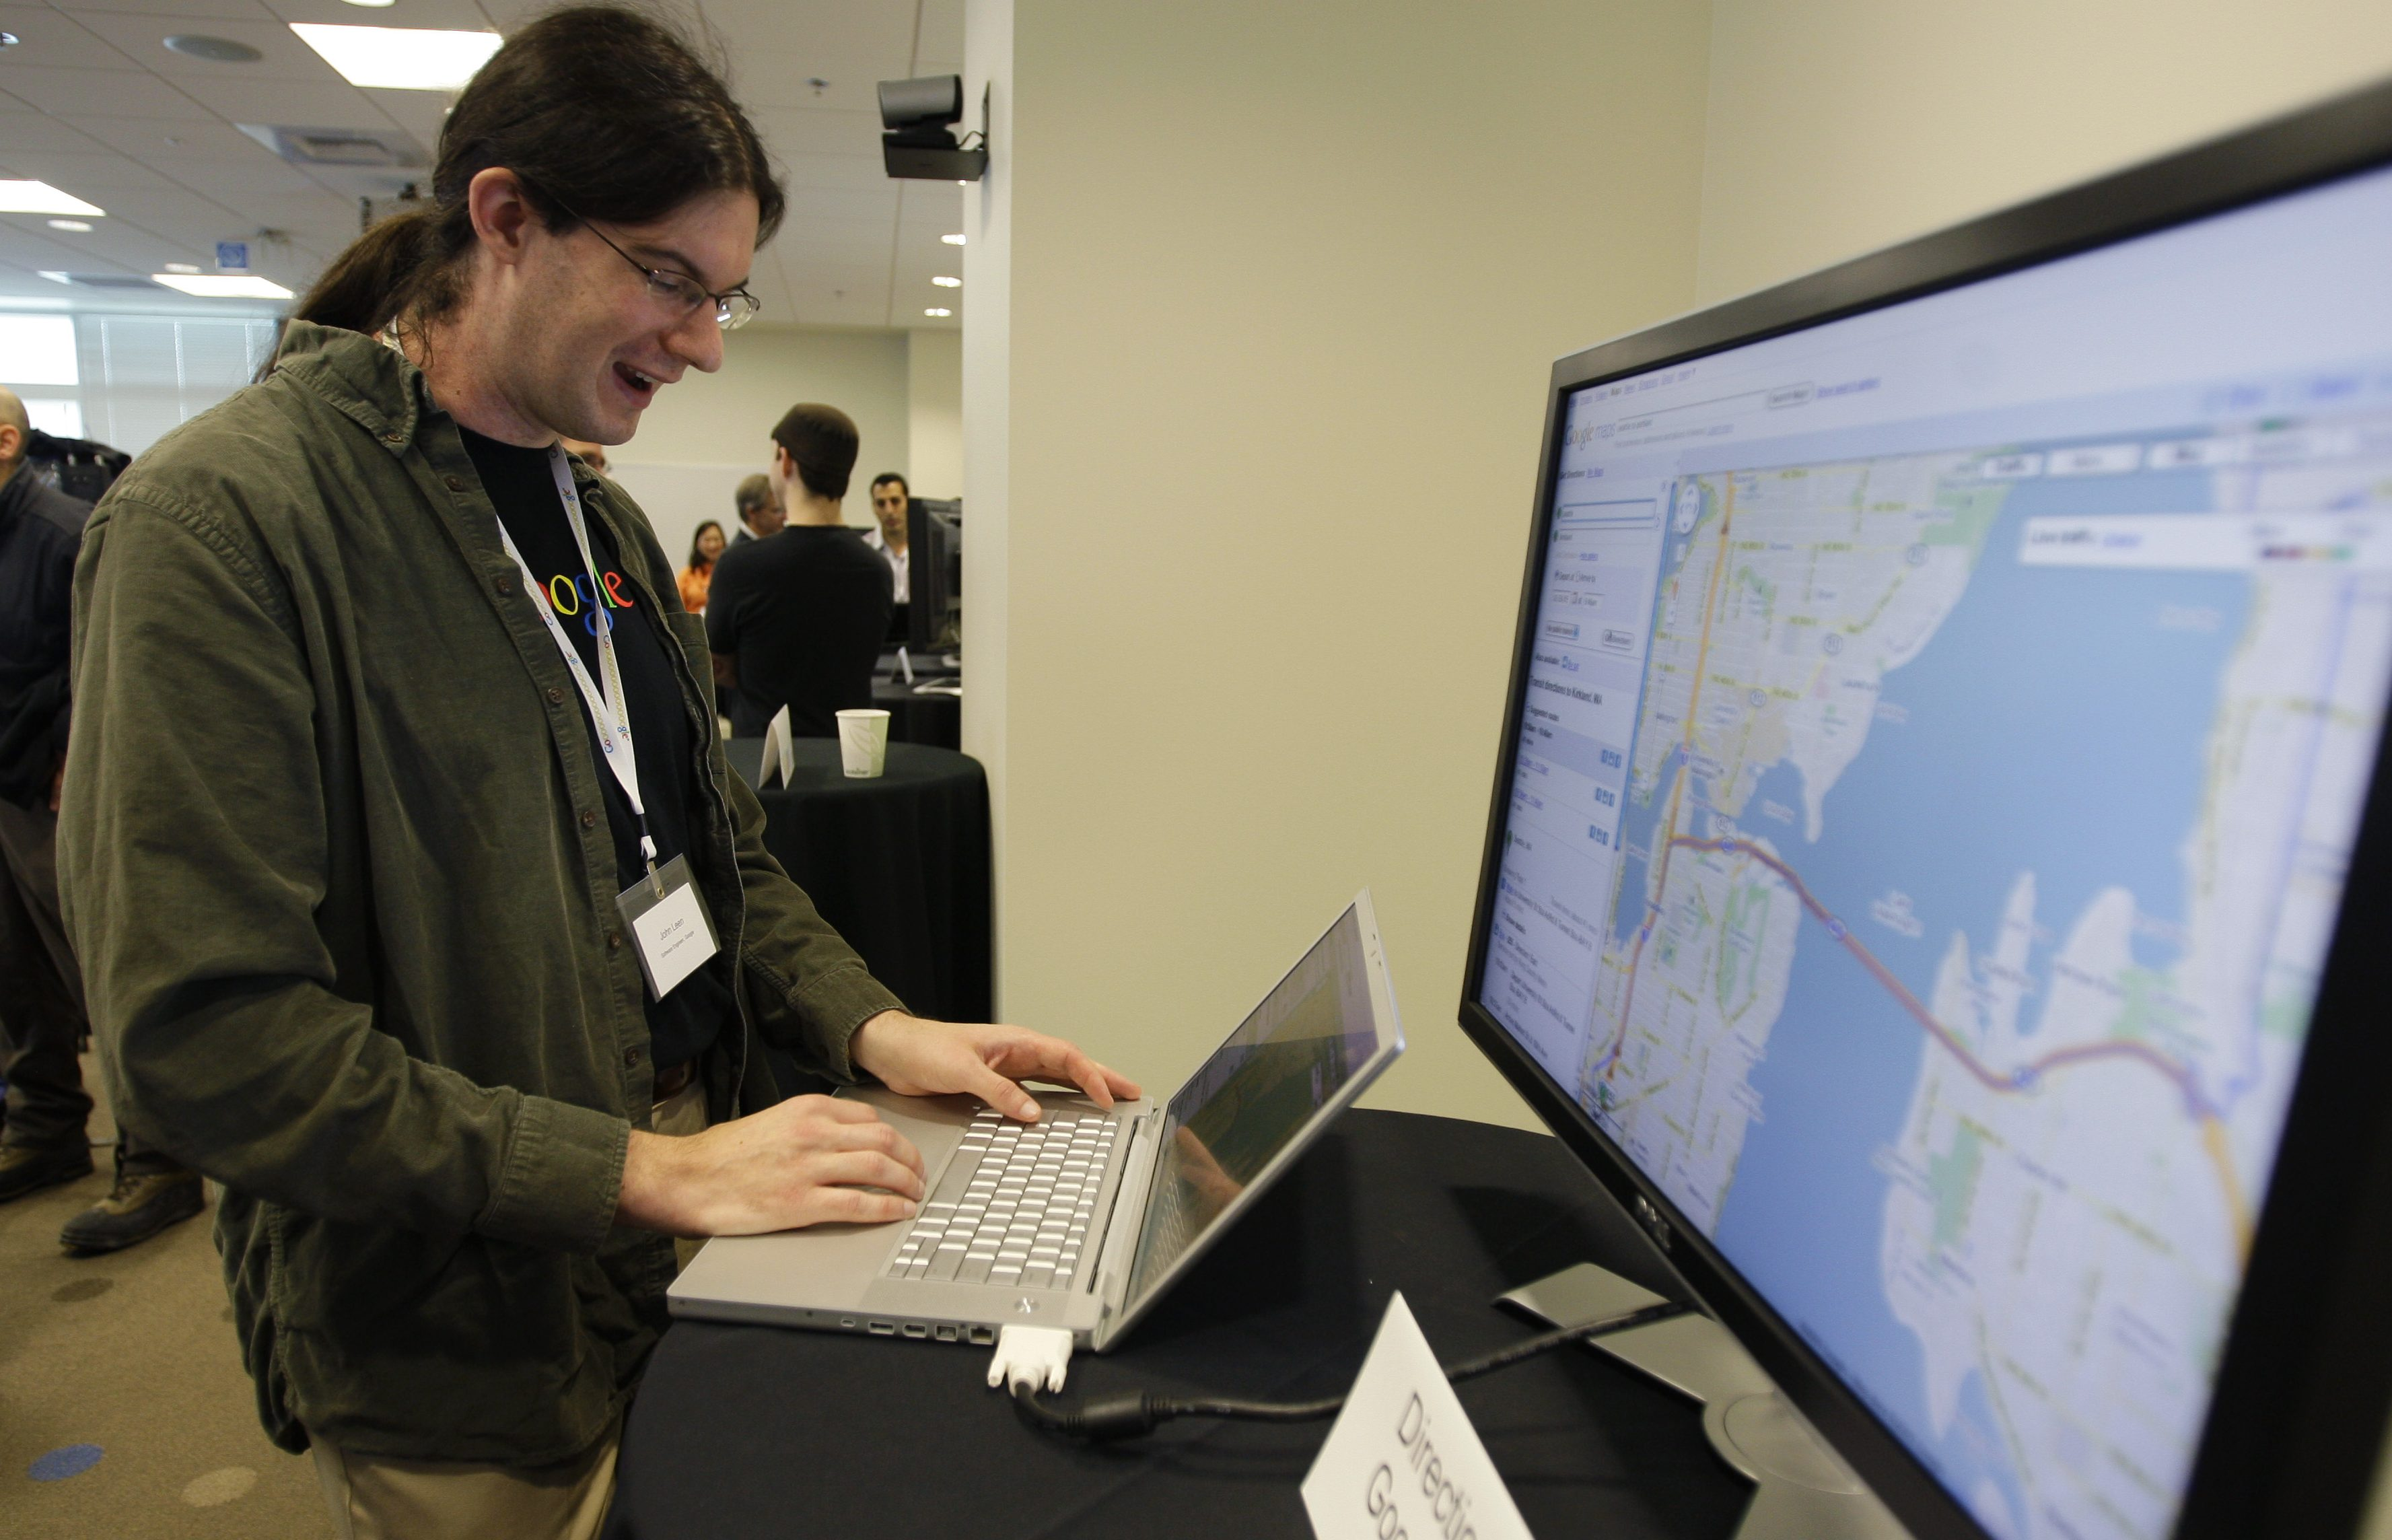 John Leen, a Google software engineer, demonstrates Google maps, at Google Inc.'s new campus in Kirkland, Wash., Wednesday, Oct. 28, 2009, during a media open house. More than 350 of Google's approximately 20,000 employees currently work in the Kirkland office. (AP Photo/Ted S. Warren)